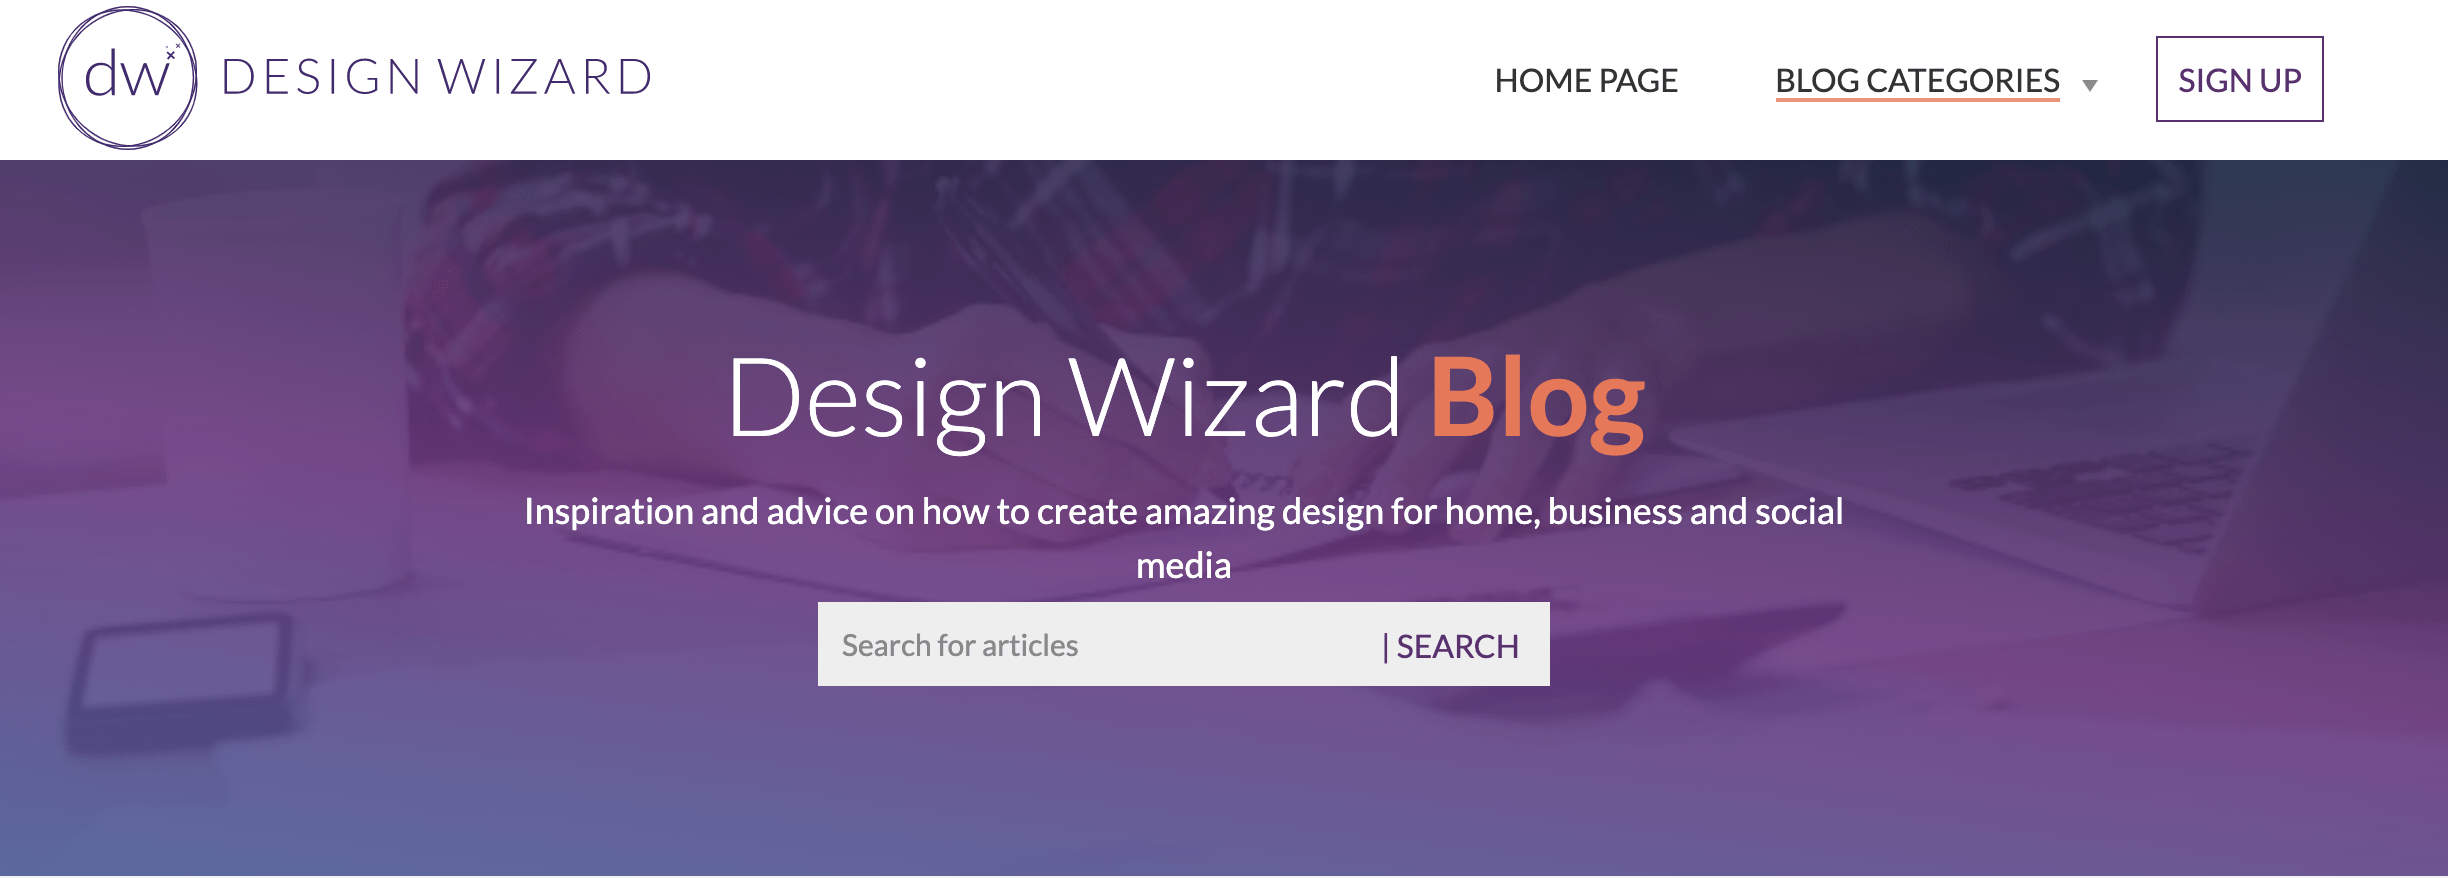 Design Wizard Graphic Design Blogs